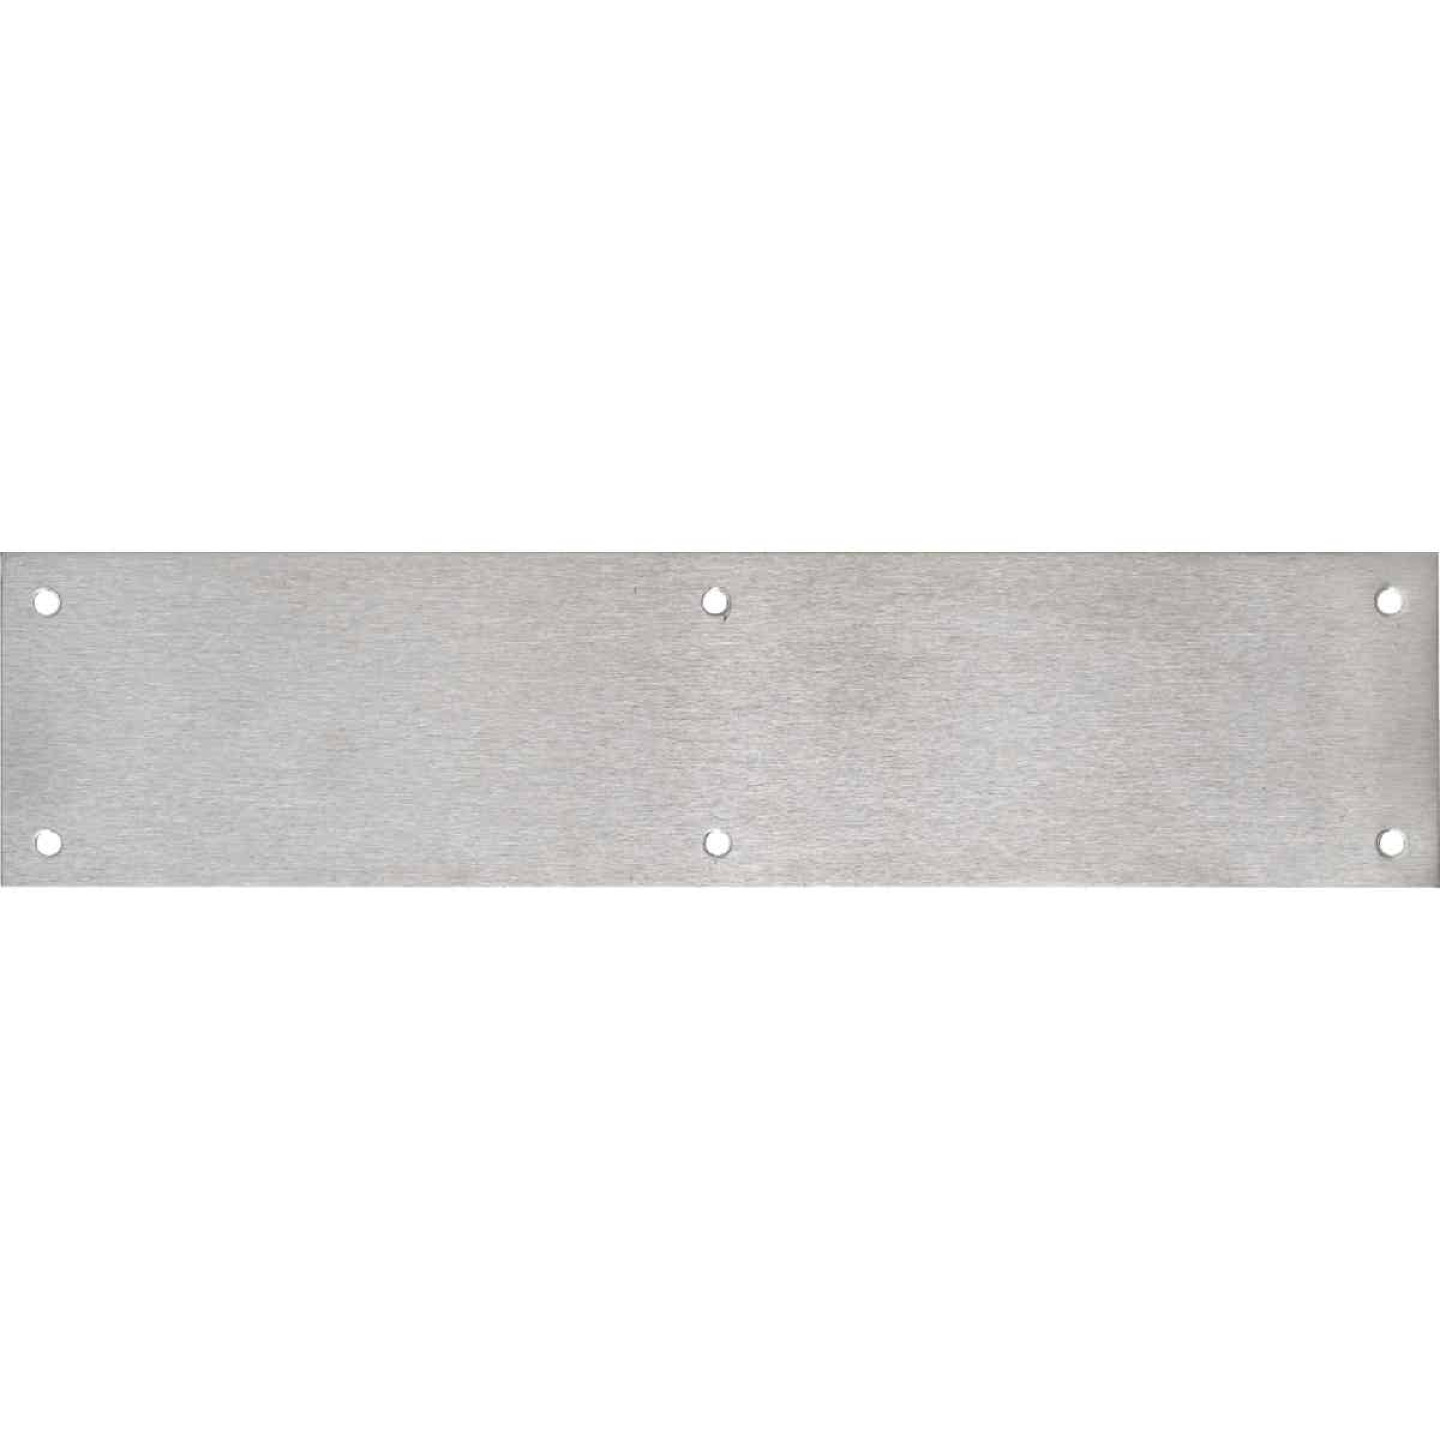 Tell 3.5 In. x 15 In. Aluminum Push Plate Image 1